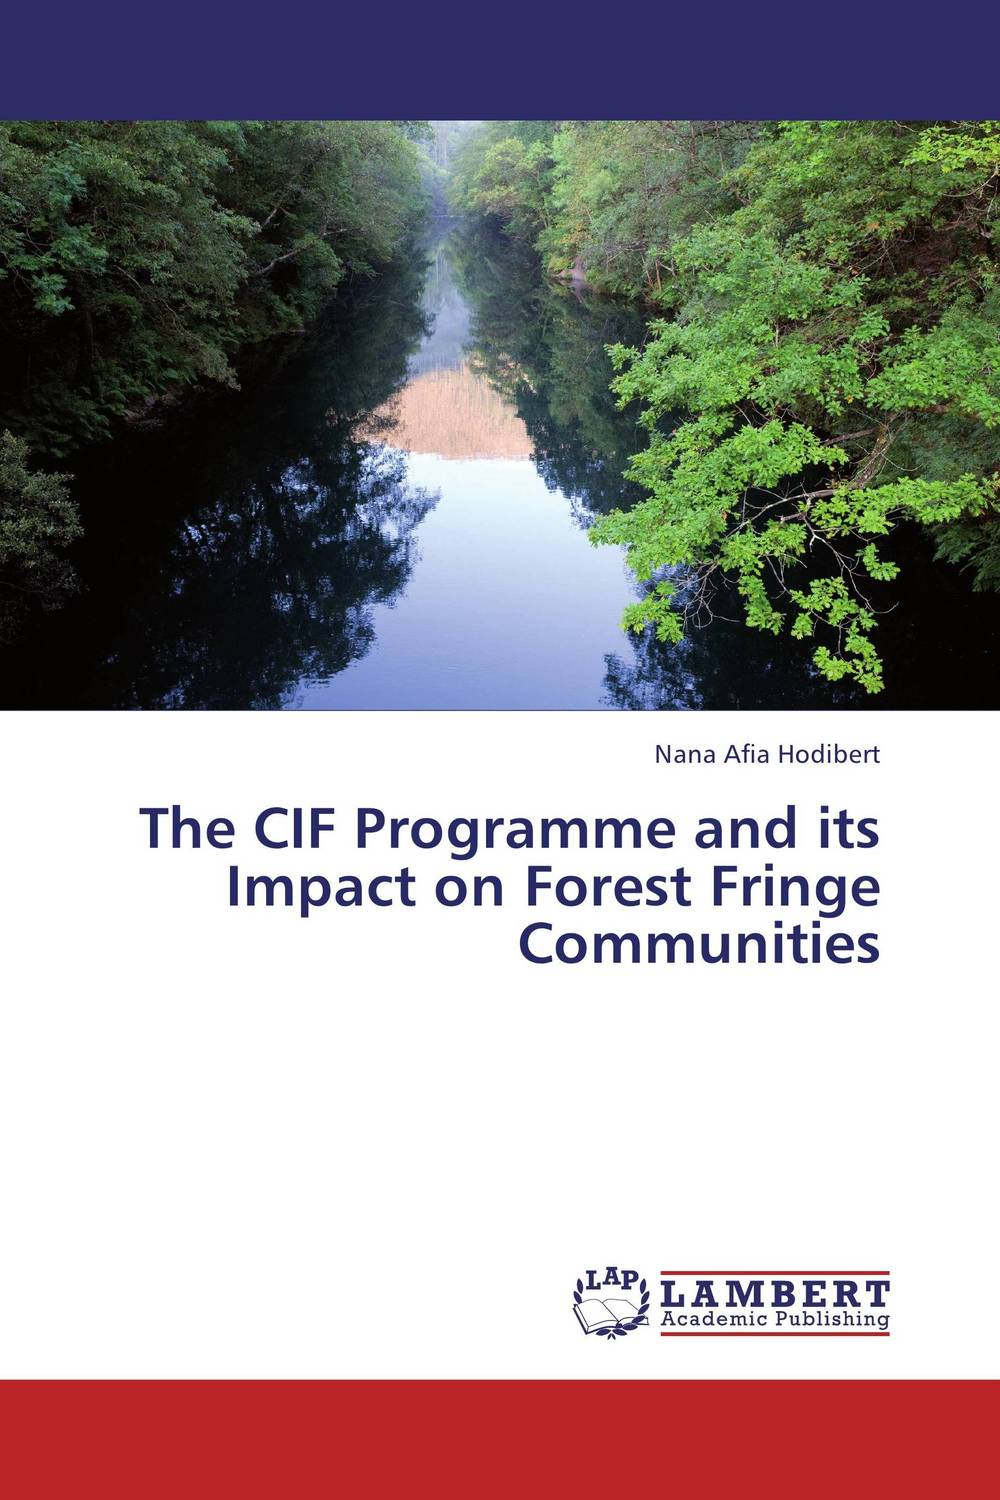 The CIF Programme and its Impact on Forest Fringe Communities biodiversity of chapredi reserve forest